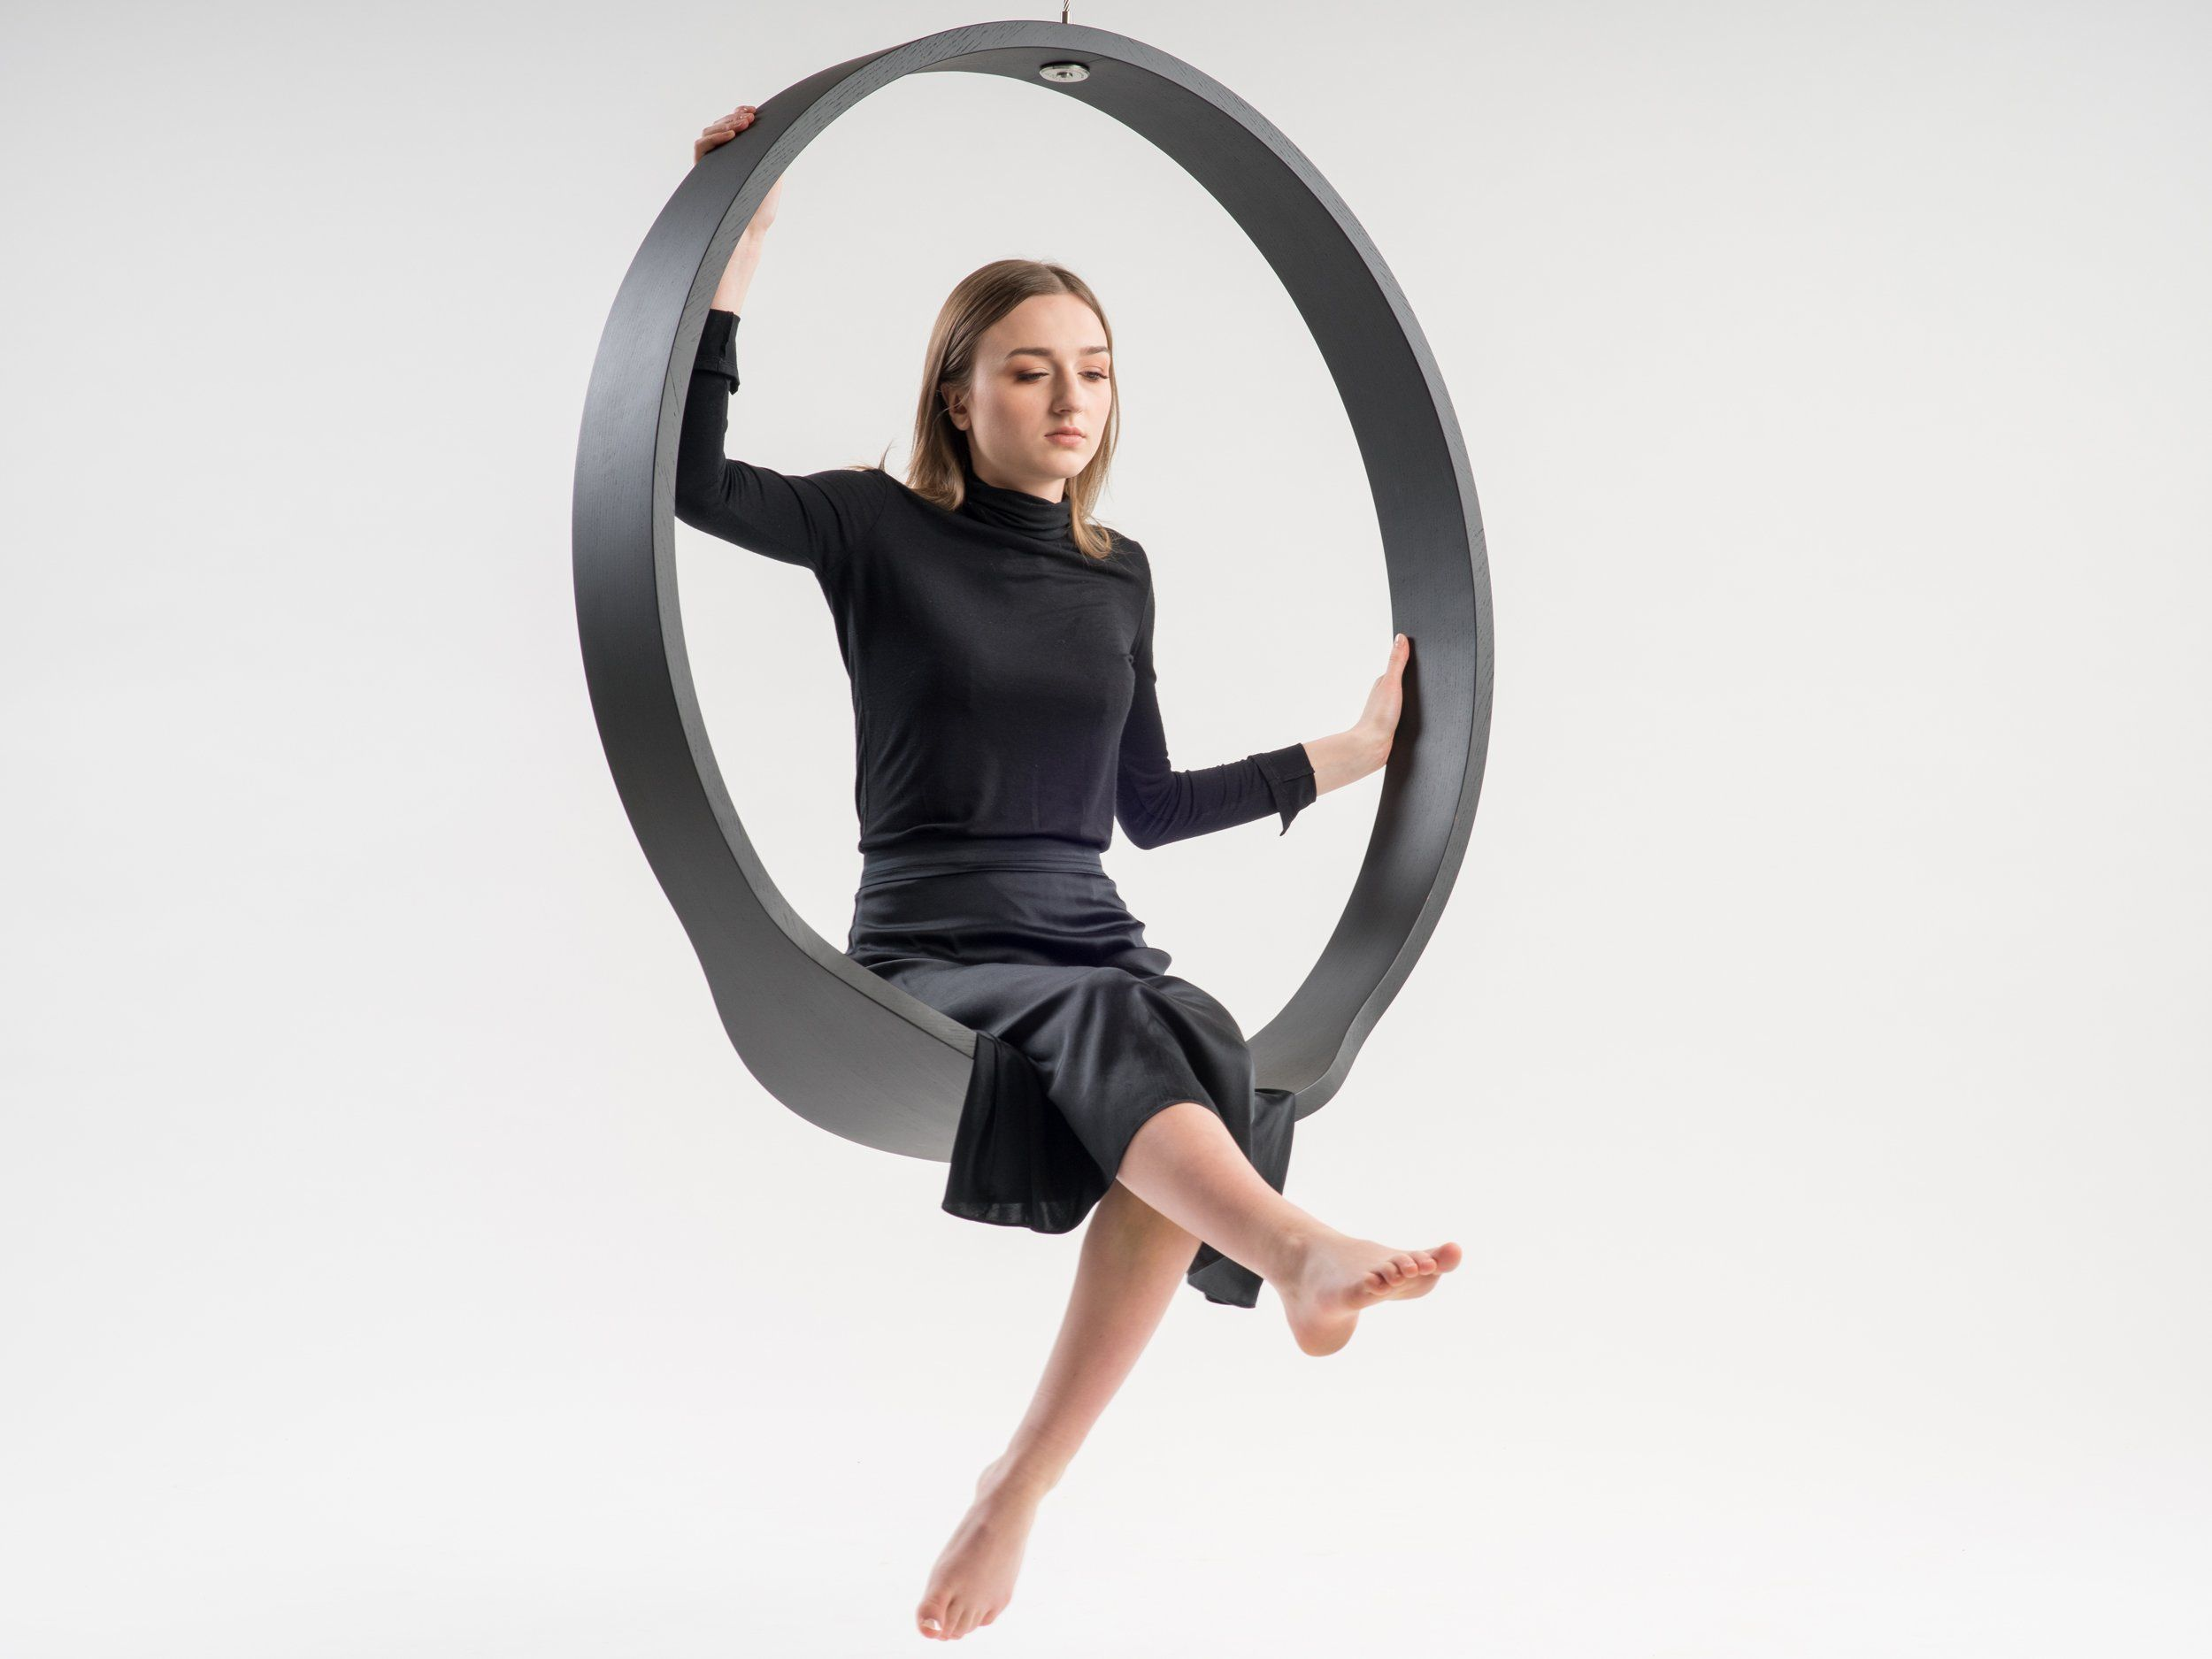 Wooden Circle Swing Model N 1 Acts As A Contemporary Rocking Chair Designboom Shop In 2020 Contemporary Rocking Chair Swinging Chair Rocking Chair